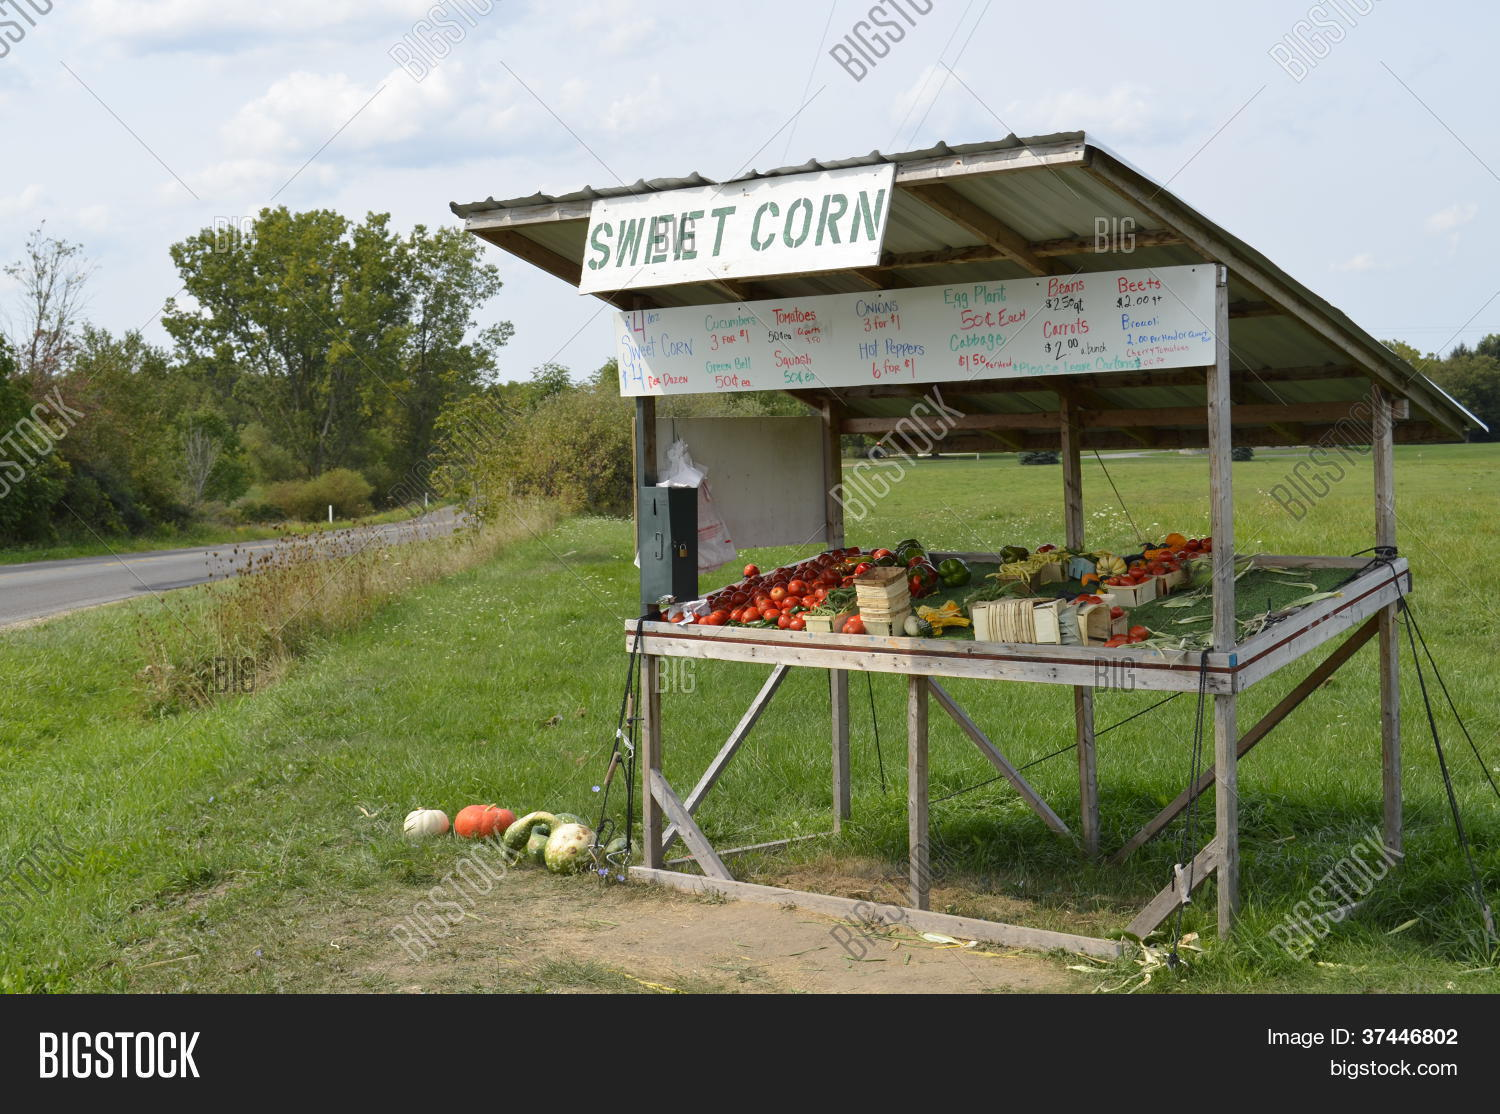 Roadside Stand Designs : Rural roadside produce stand stock photo images